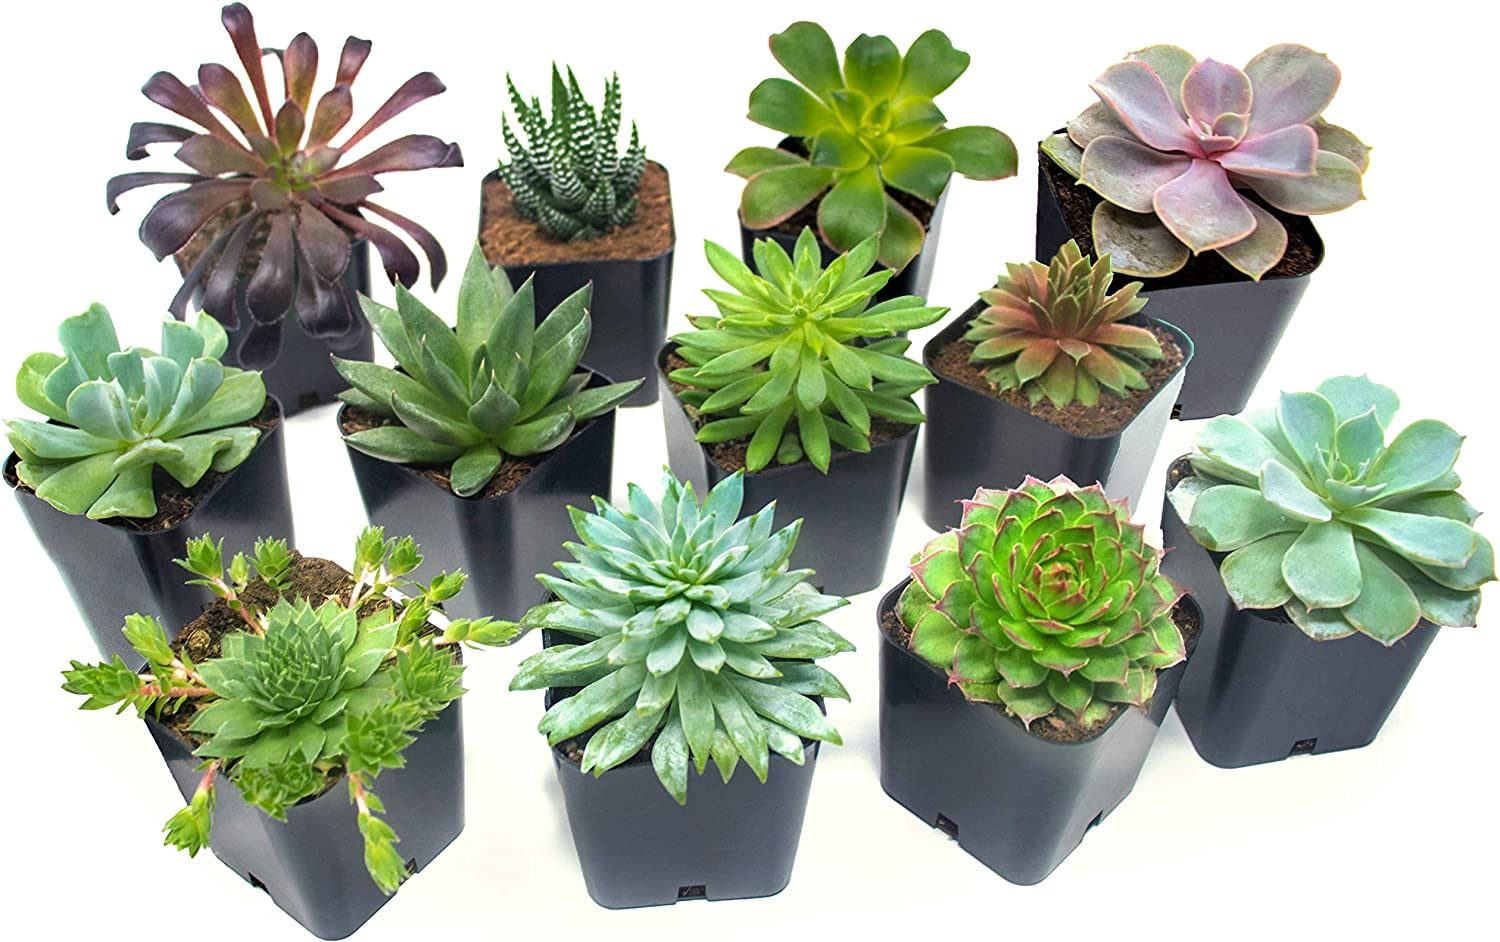 Succulent Plants (12 Pack) Fully Rooted in Succulent Planter Pots with Succulent Soil | Real Live Potted Succulents | Indoor Plants | Unique Live Plants | Cactus Decor Succulent Pots by Aquatic Arts 81RXVSrdsSL